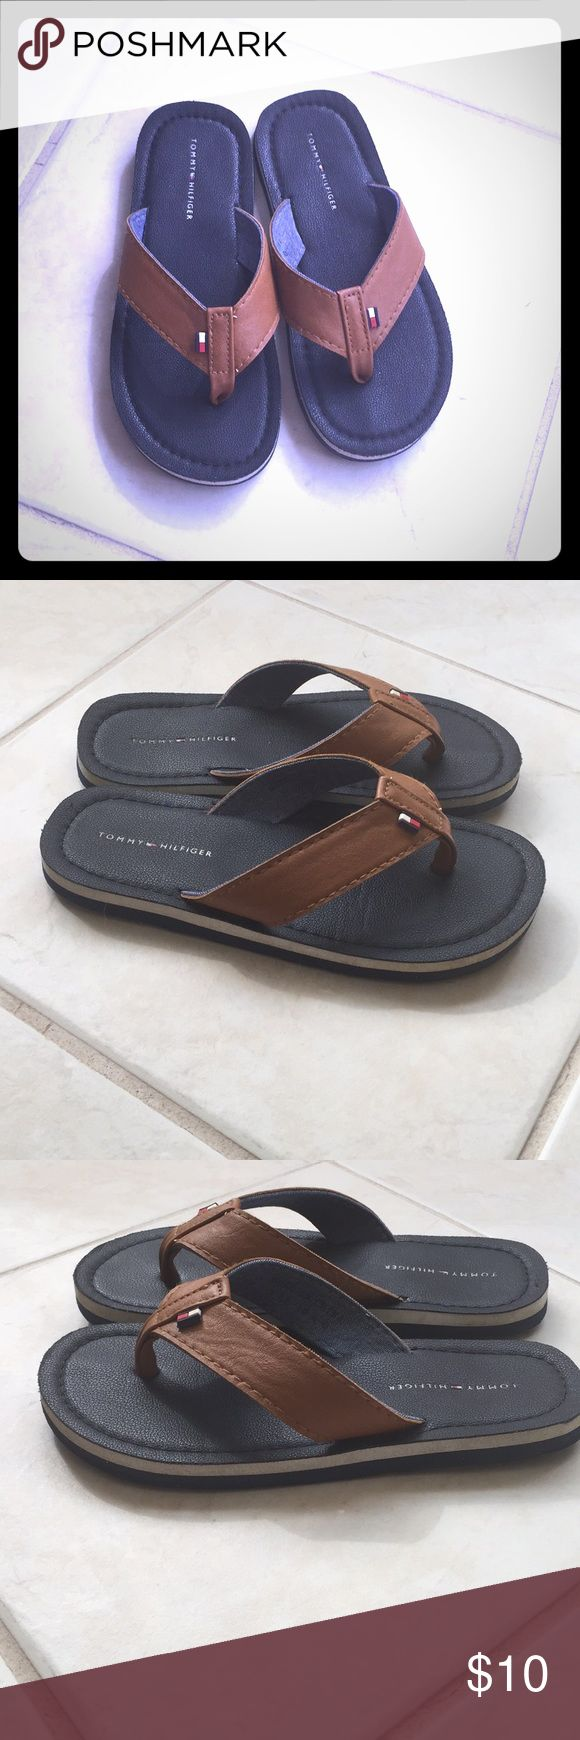 Tommy Hilfiger Boys Flip Flop Size 13 - GUC Boys flip flops. Some wear, but in really good condition. Lots of life left in them!! Tommy Hilfiger Shoes Sandals & Flip Flops